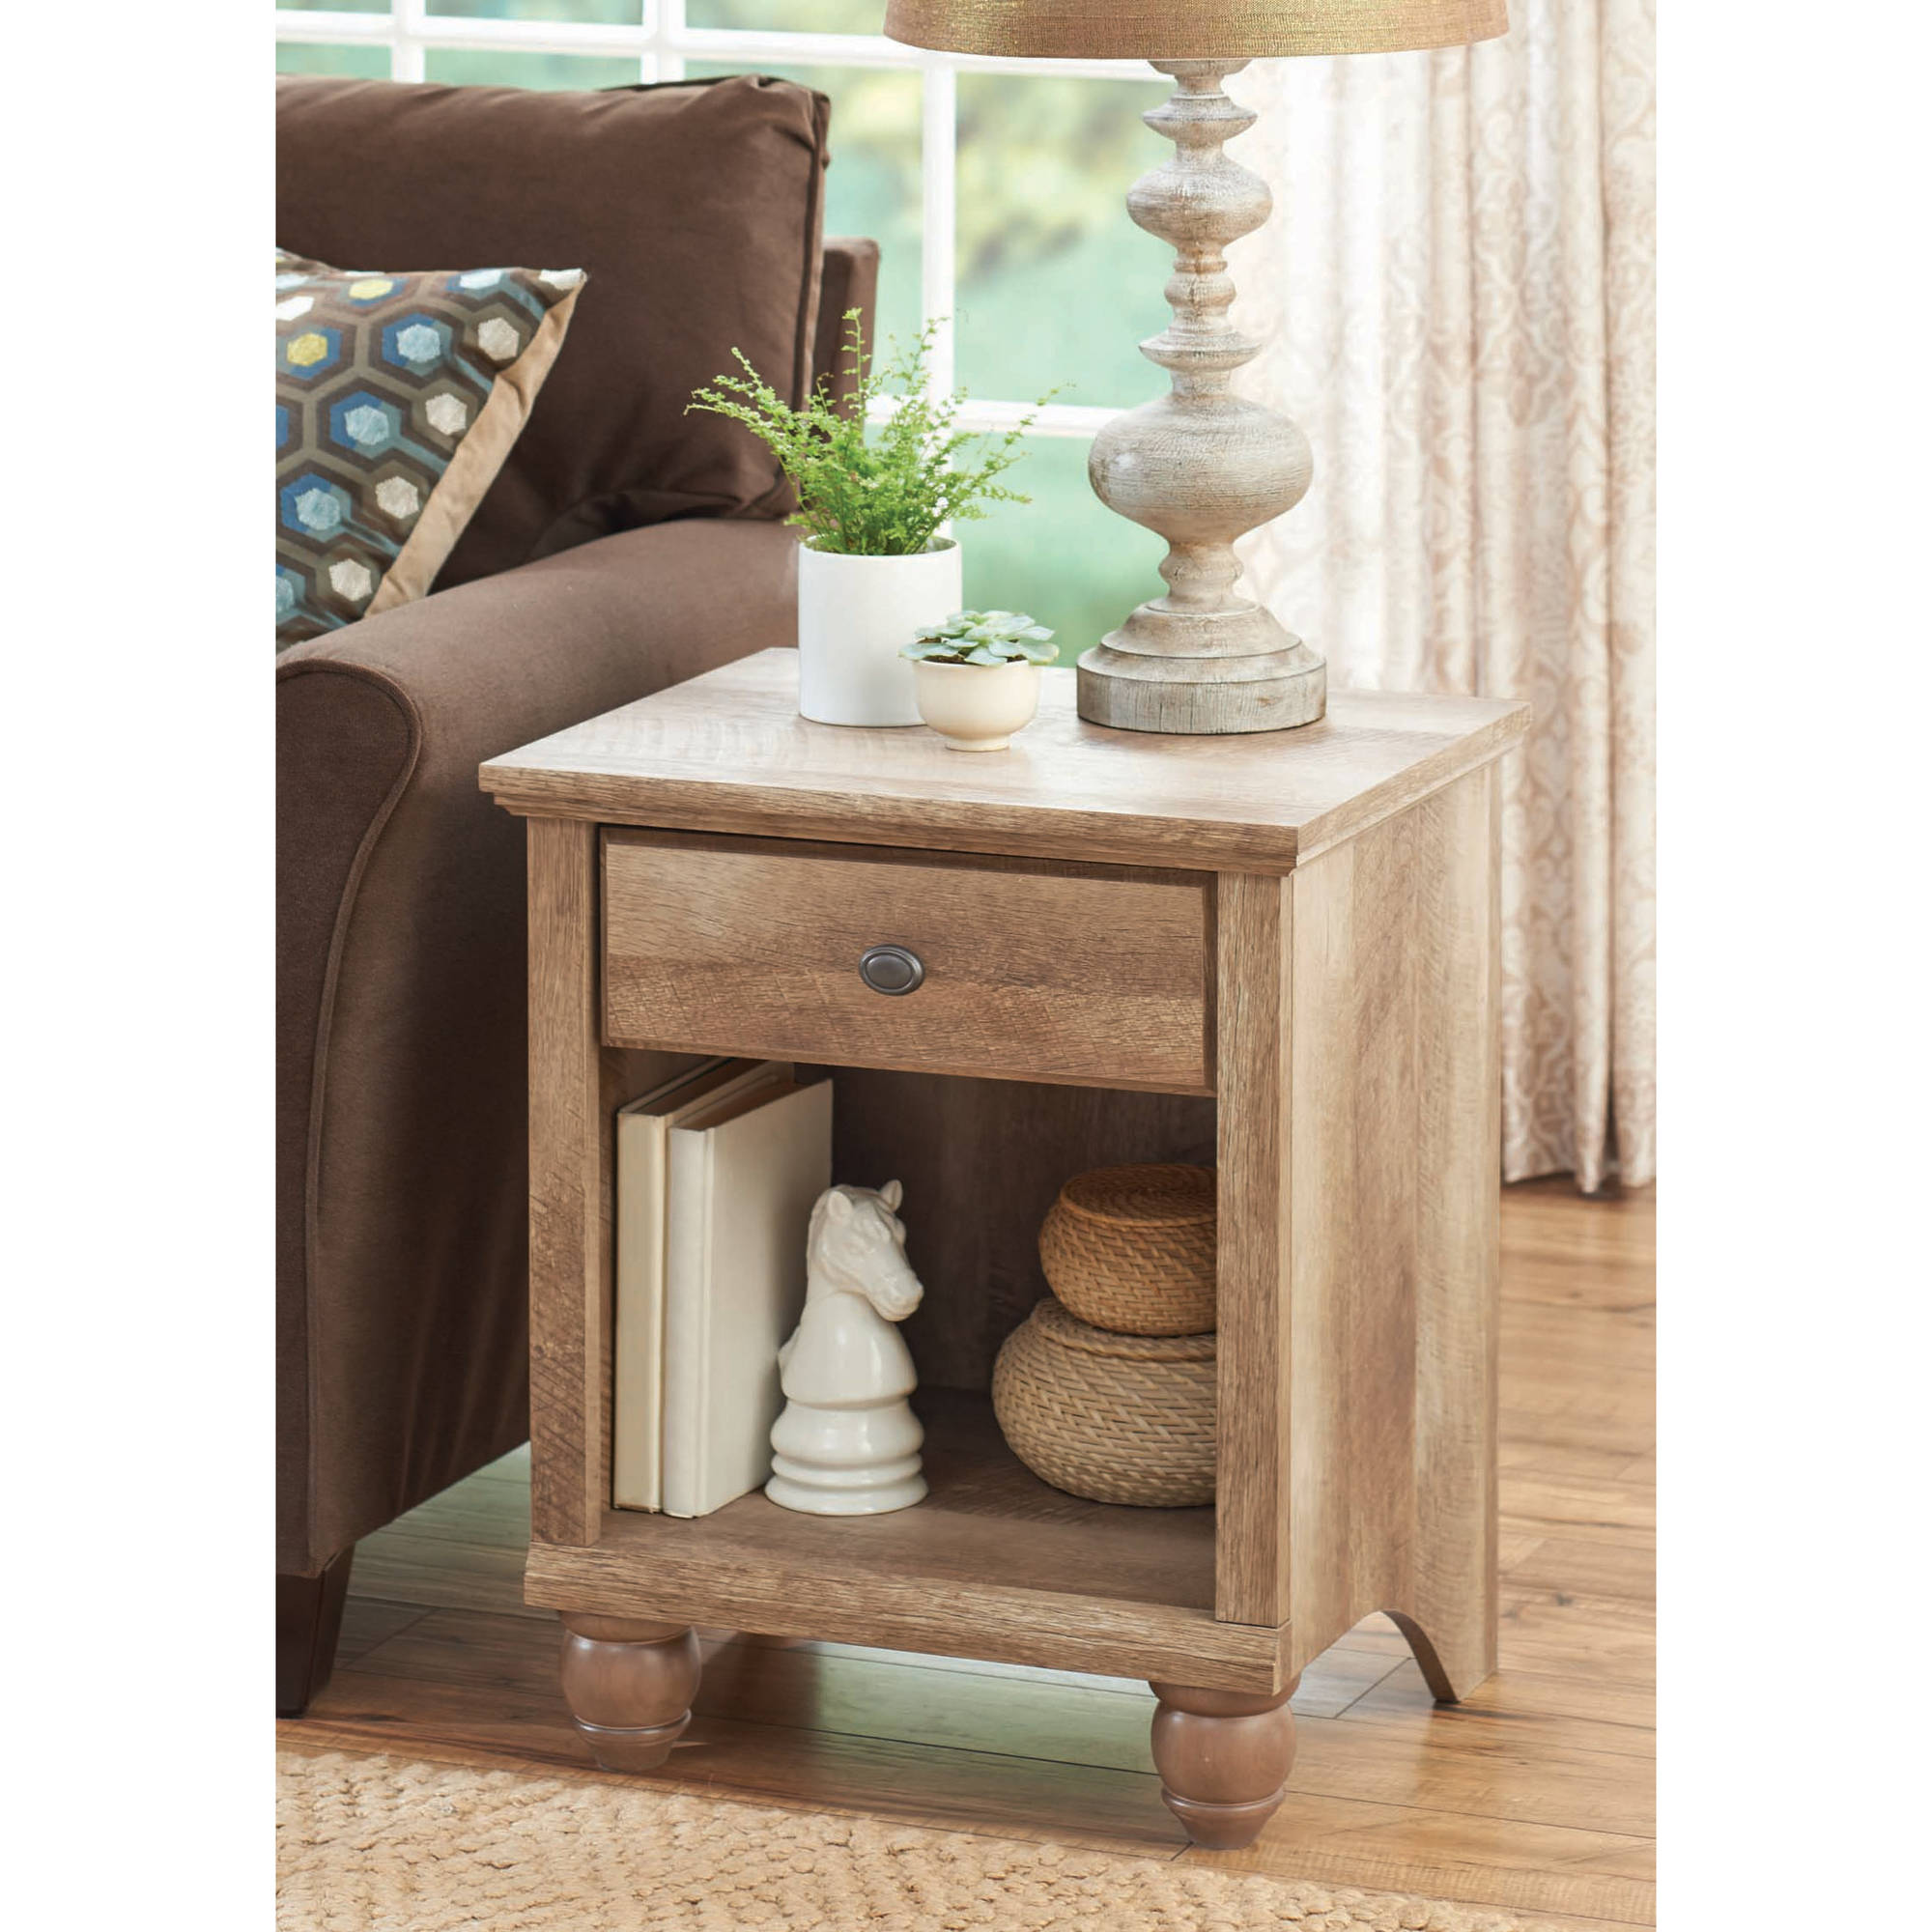 better homes gardens crossmill accent table weathered finish tables for living room dining with chairs fruity mixed drinks side usb ports black glass occasional oak bedside